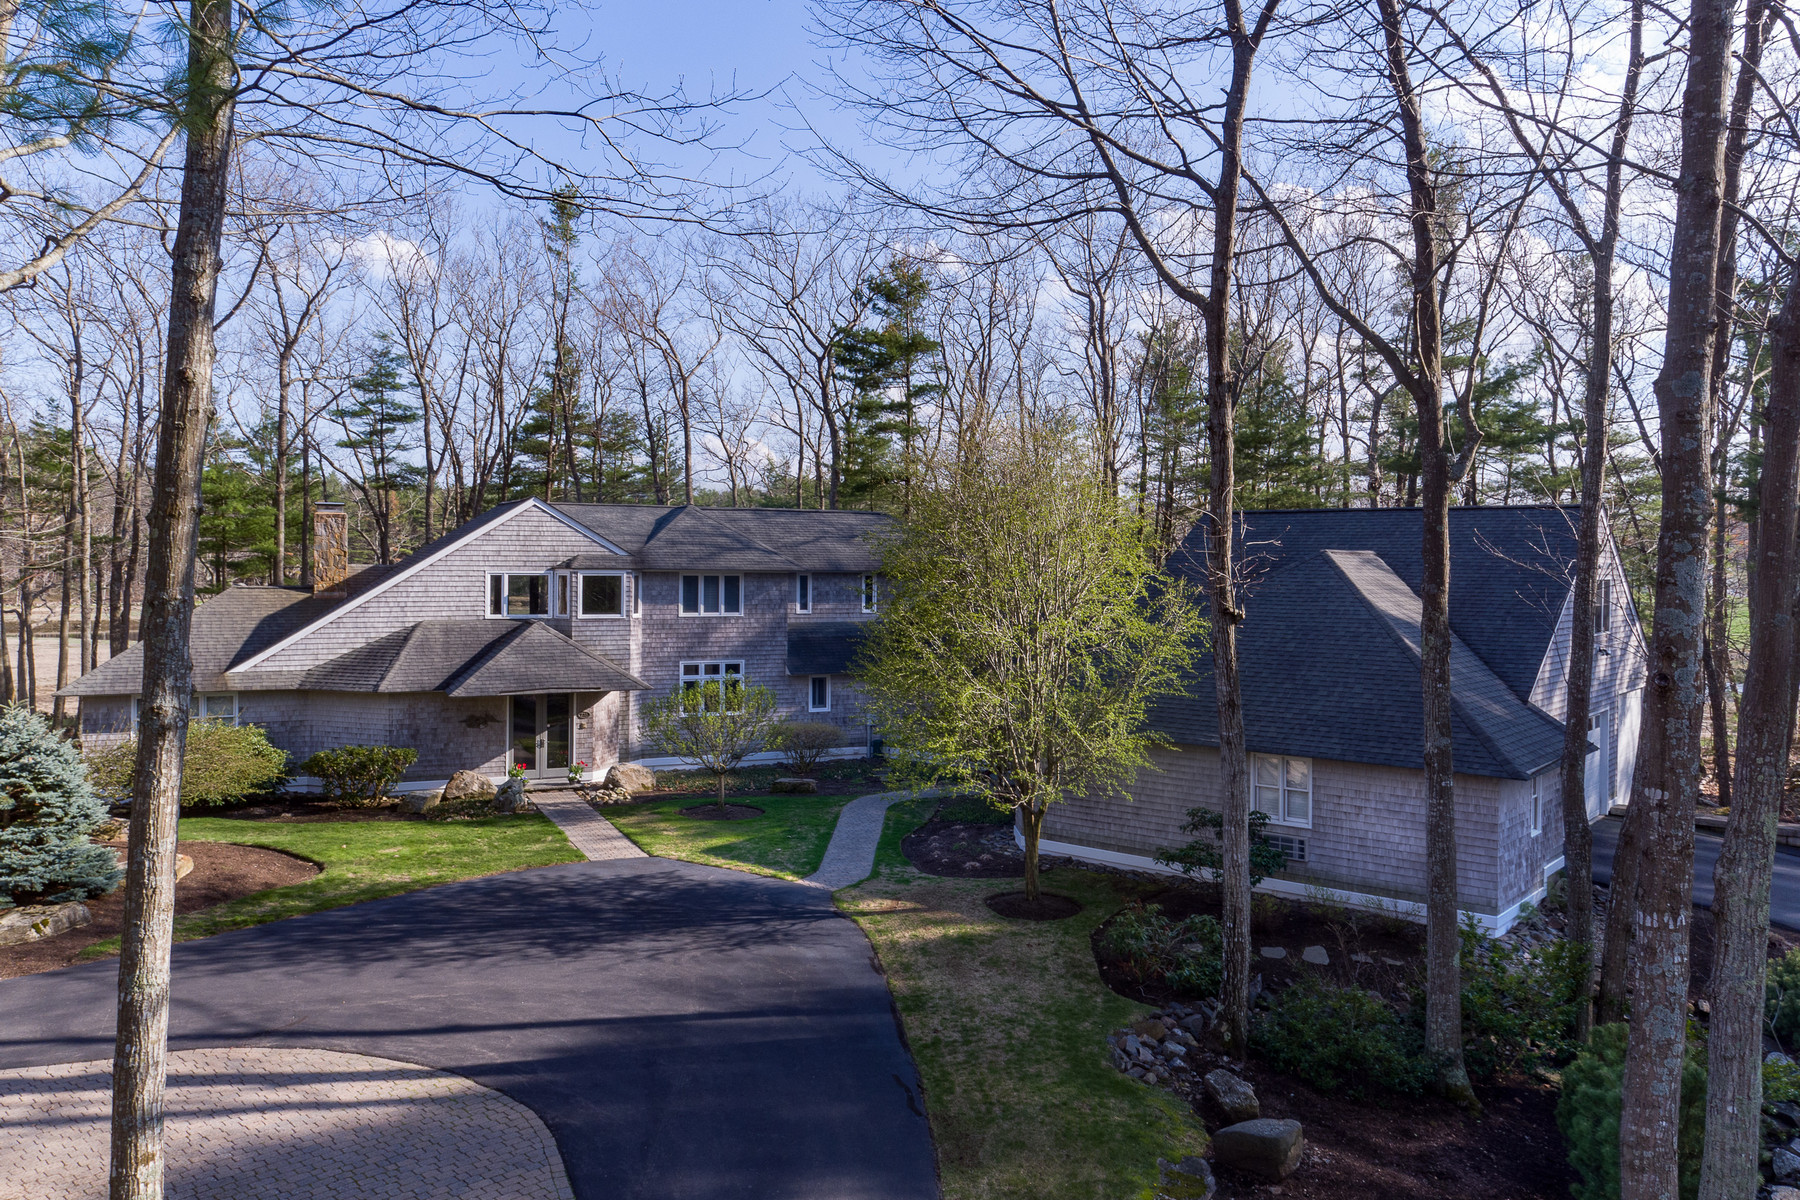 Single Family Home for Sale at Private Waterfront 8 Acre Compound 235 Pioneer Road Rye, New Hampshire 03870 United States